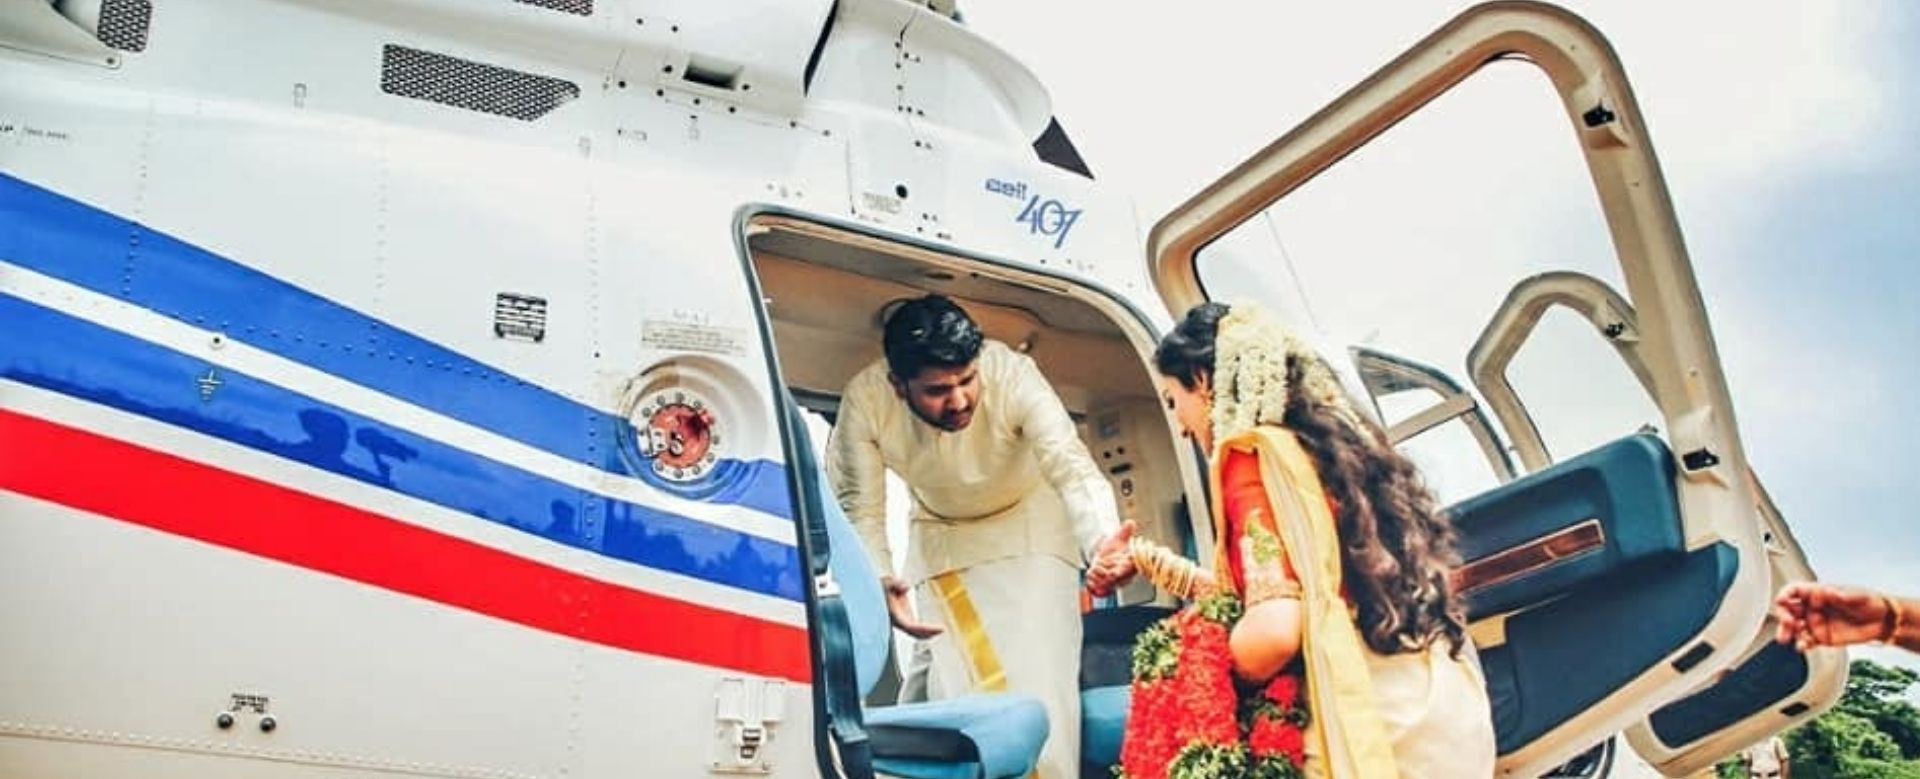 Bangladesh Helicopter Service Hotline 8801742 265327 Air Ambulance Service In Dhaka Wedding Helicopter Bangladesh Corporate Helicopter Helicopter Tour Bangladesh Joy Right Shooting Helicopter Bangladesh Dhaka Helicopter Shooting Helicopter Rent